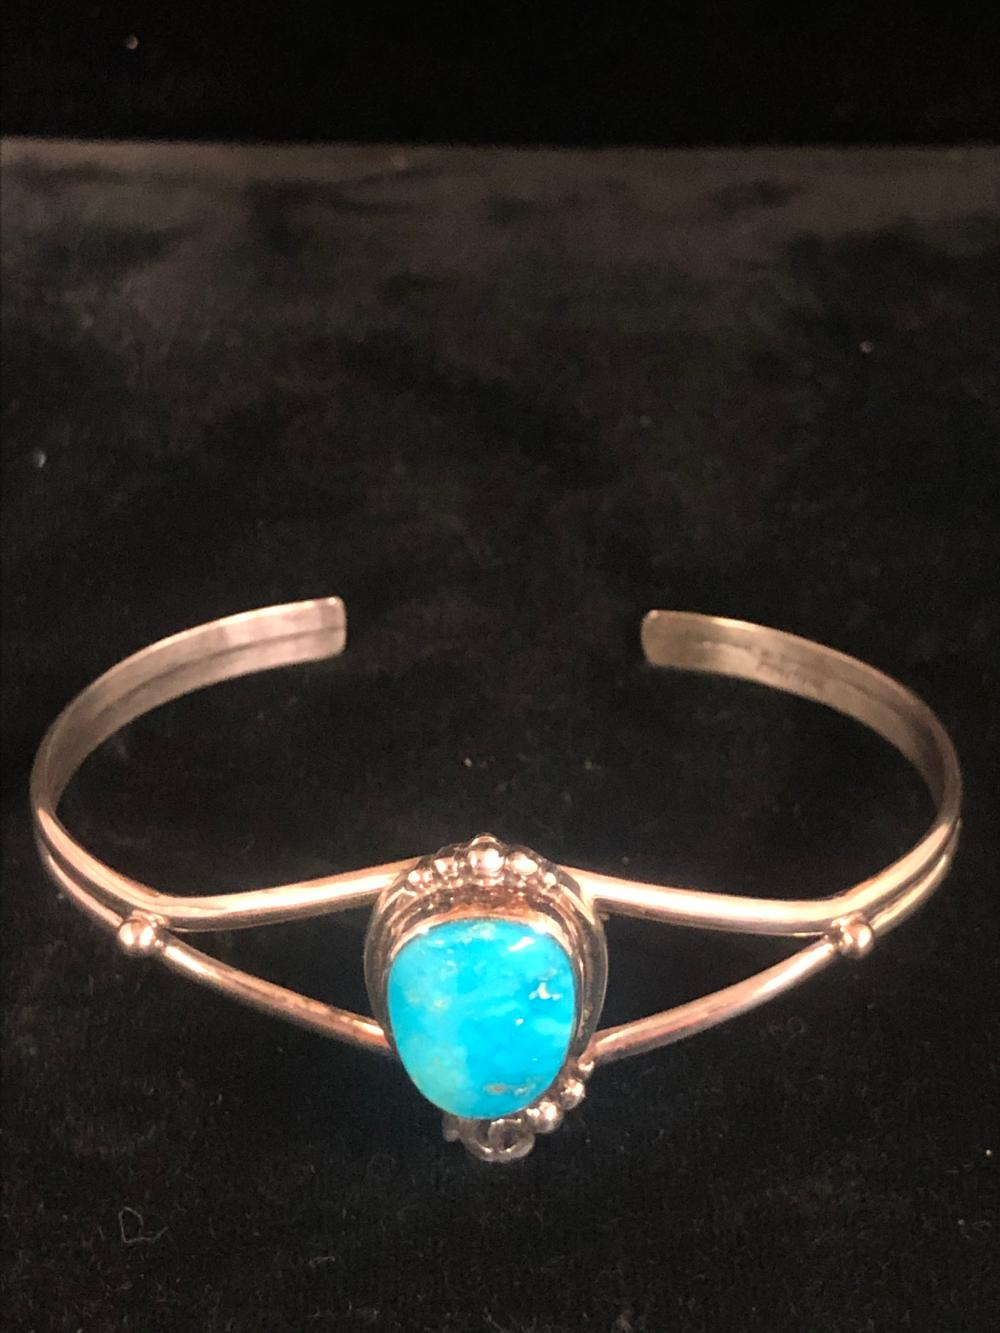 Turquoise stone sterling silver cuff bracelet - kingman turquoise